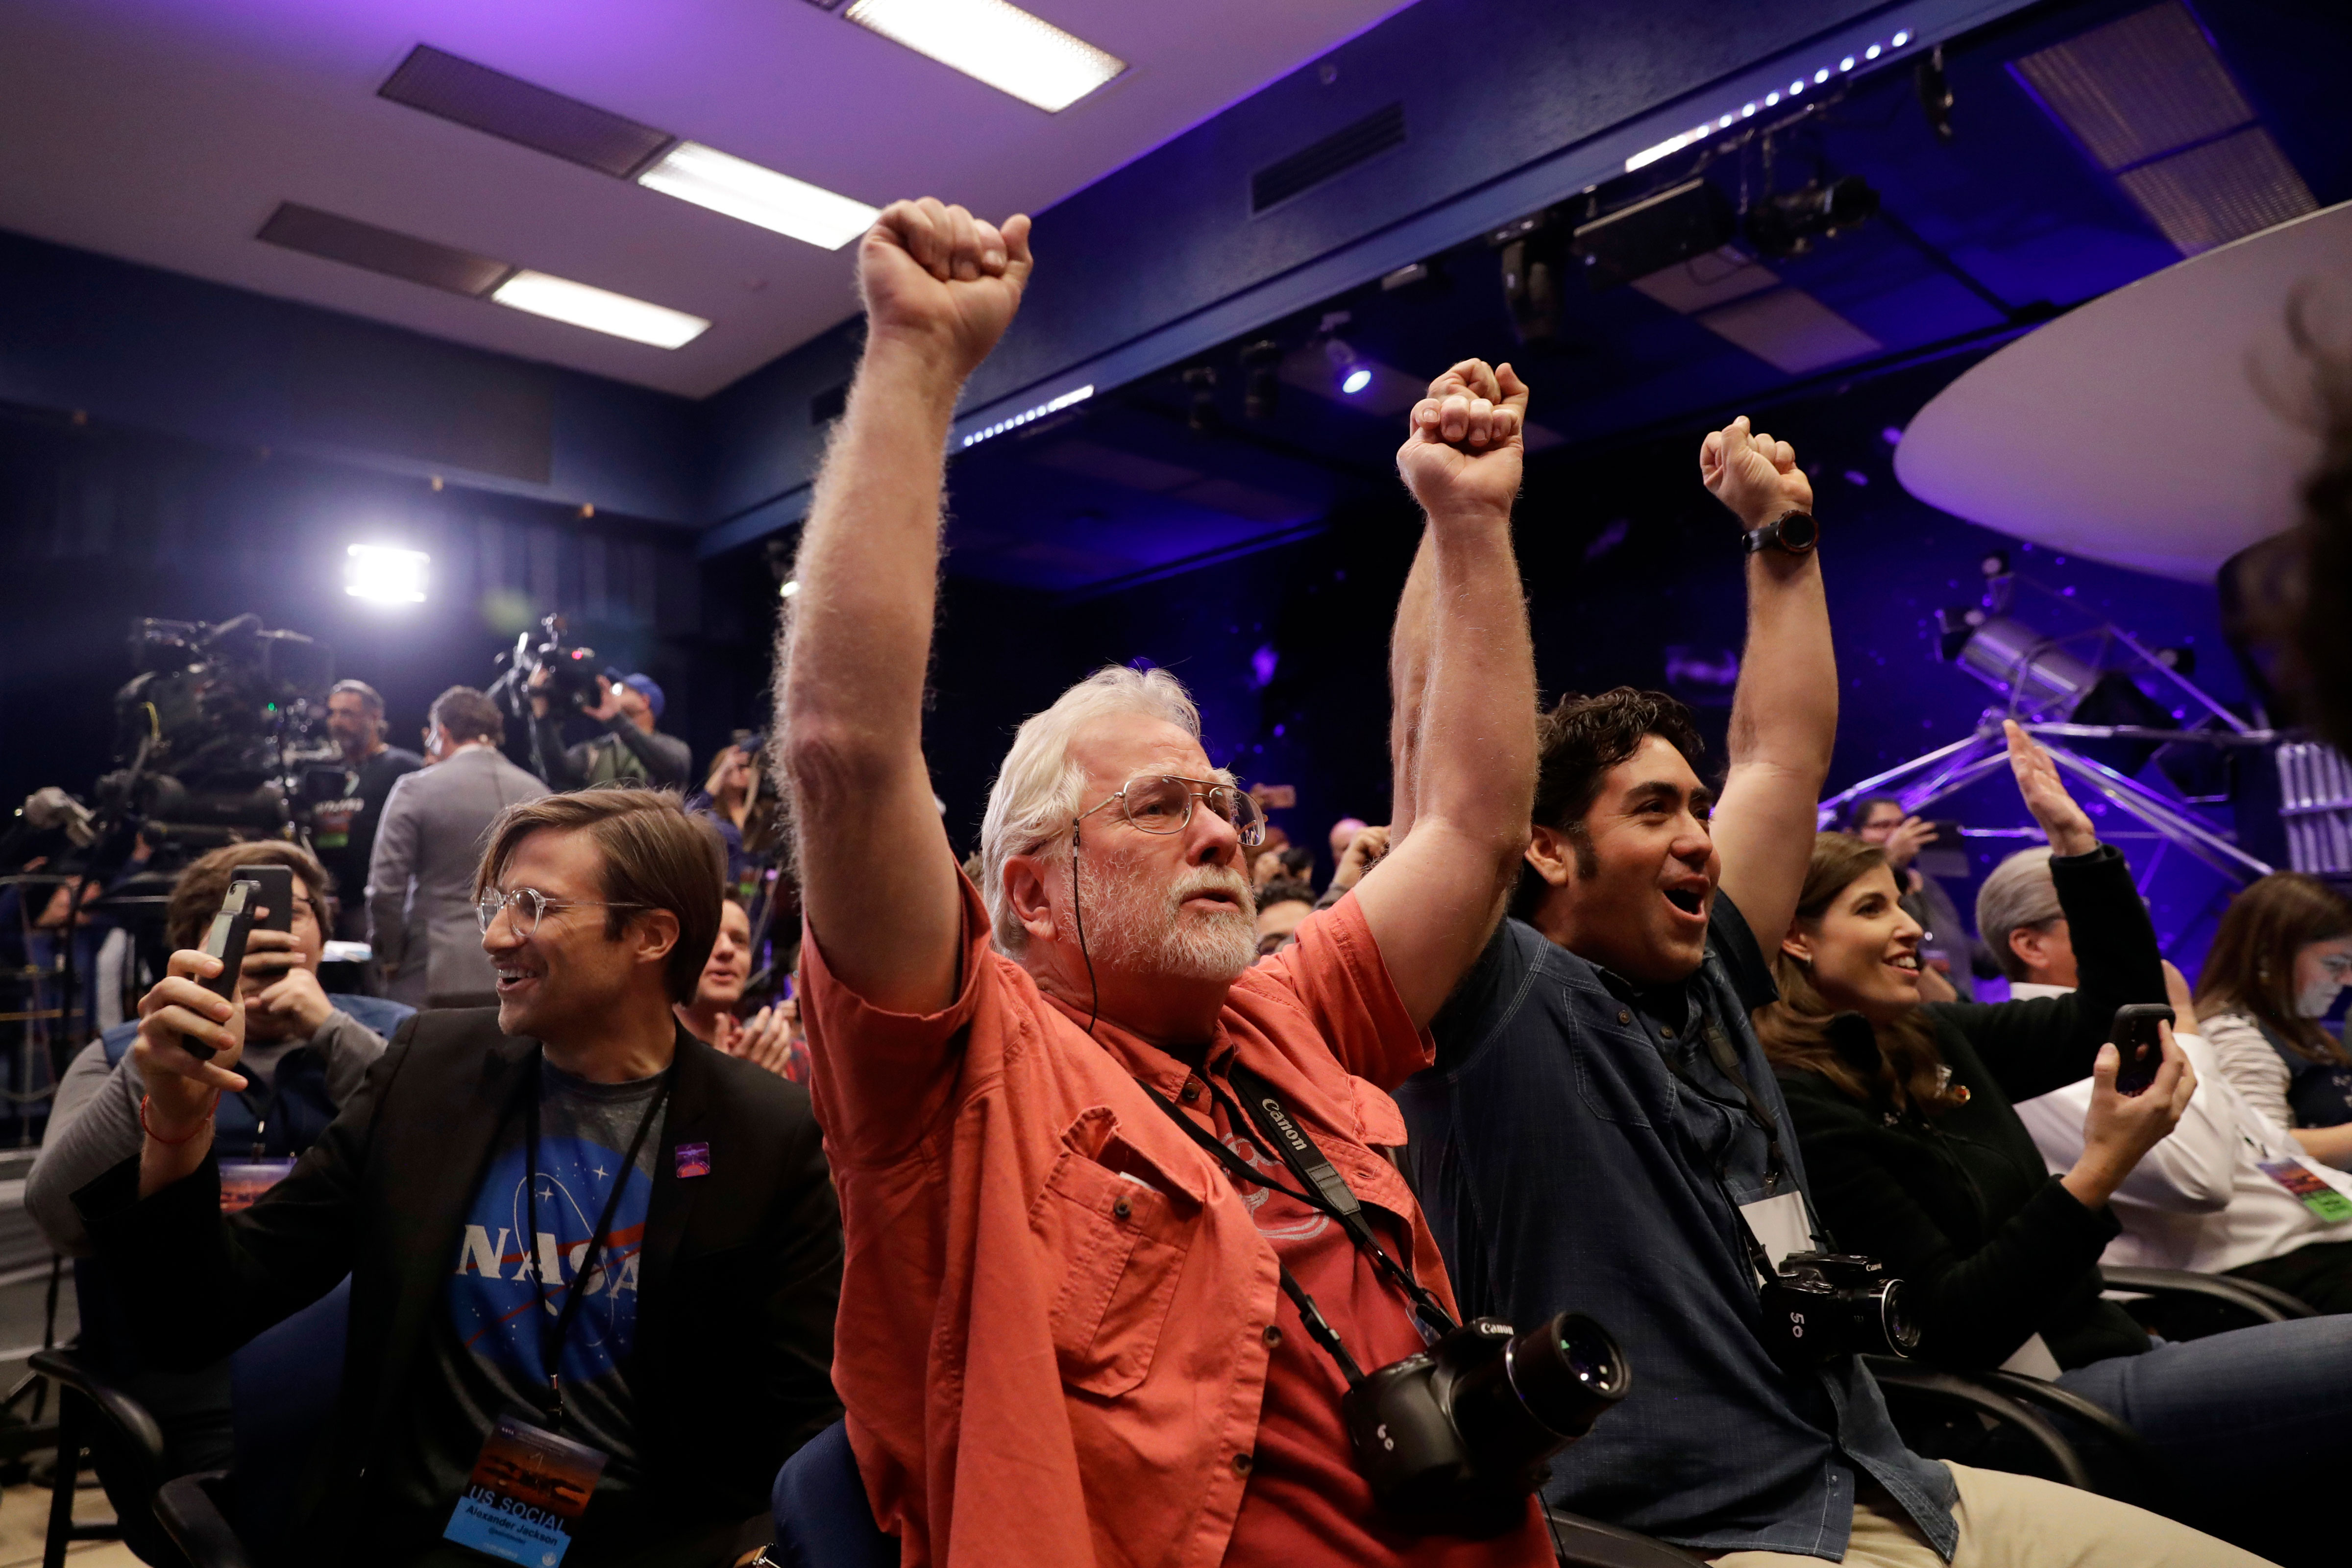 <p>People at NASA's Jet Propulsion Laboratory in Pasadena, Calif., celebrate as the InSight lander touches down on Mars on Monday, Nov. 26, 2018. </p>